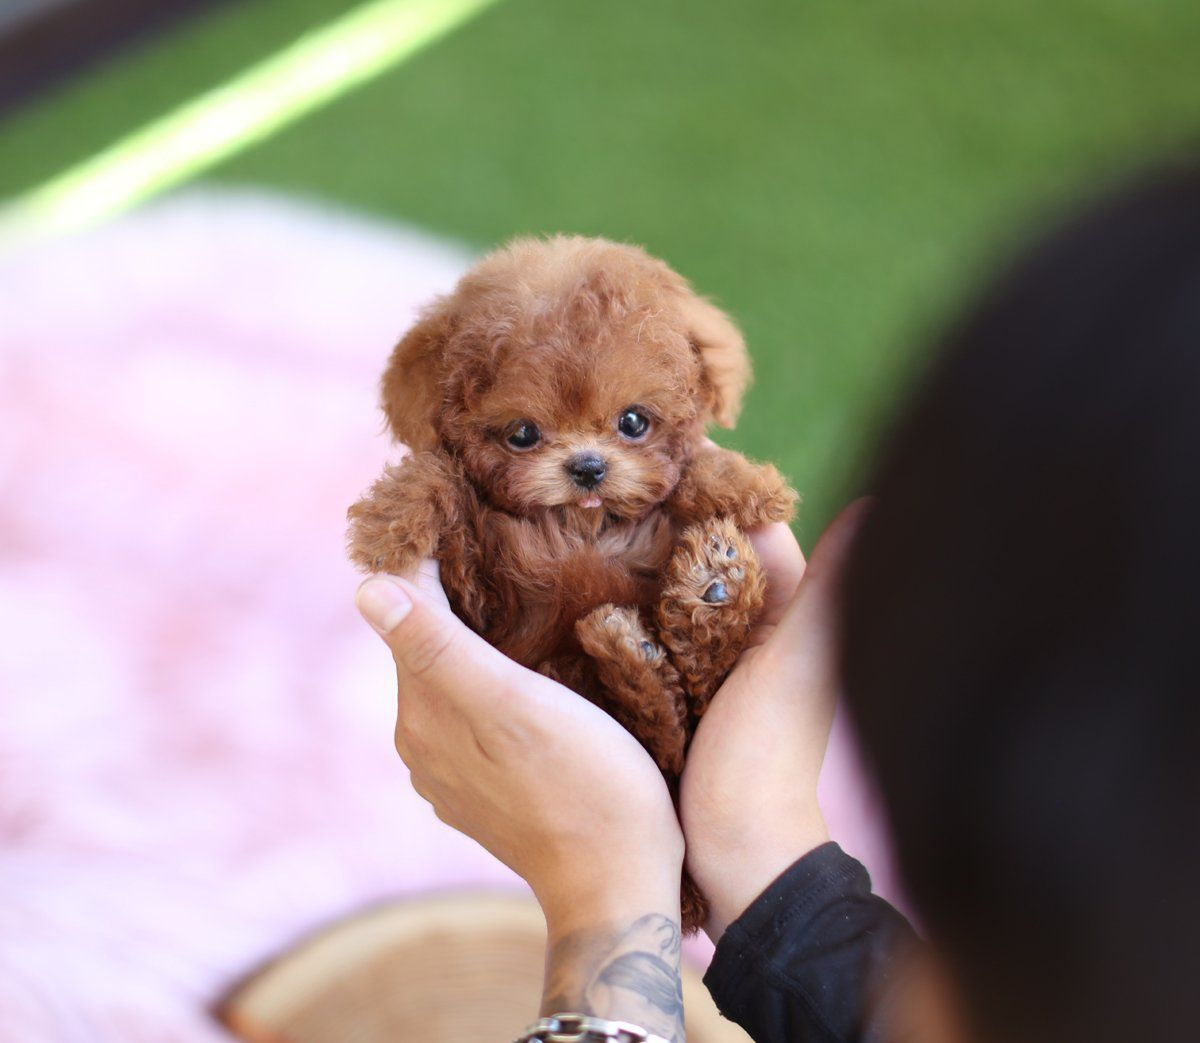 Puppies Teacup Puppies For Sale Teacup Puppy Miniature Toy Dogs In 2020 Toy Dog Breeds Toy Poodle Puppies Teacup Puppies For Sale